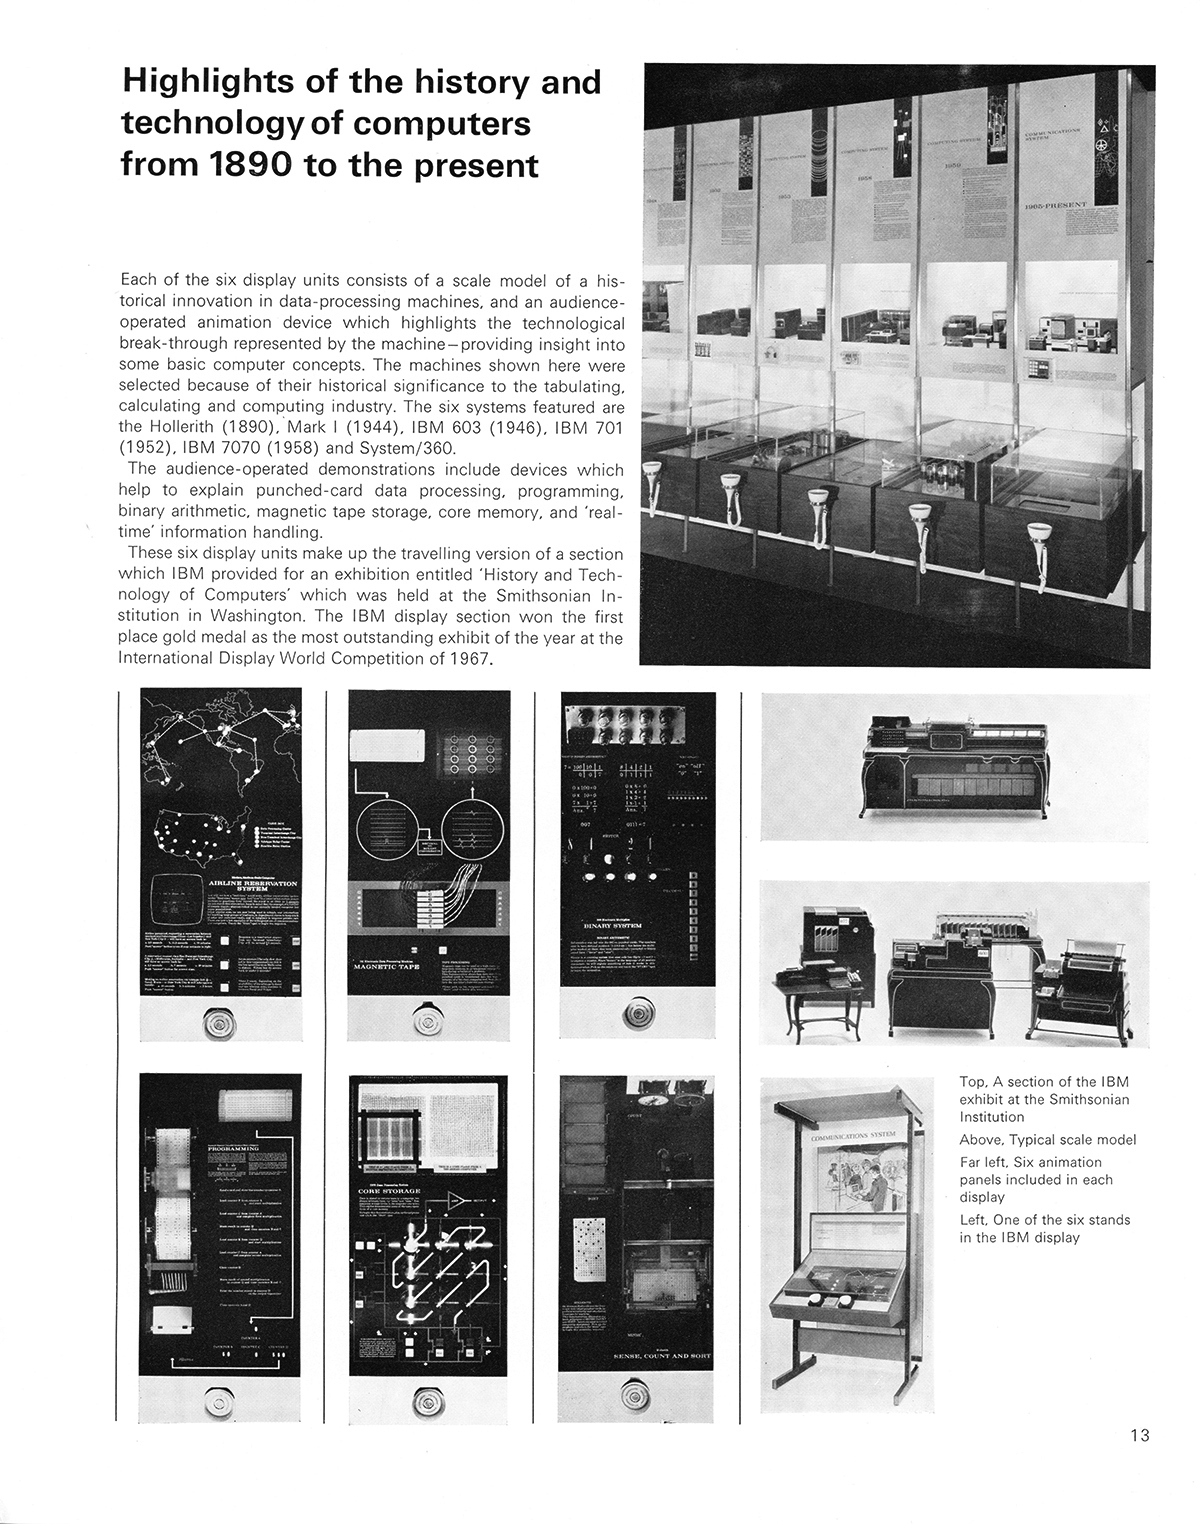 Highlights of the history and technology of computers from 1890 to the present. Cybernetic Serendipity: The Computer and the Arts, Studio International Special Issue, 1968, page 13.